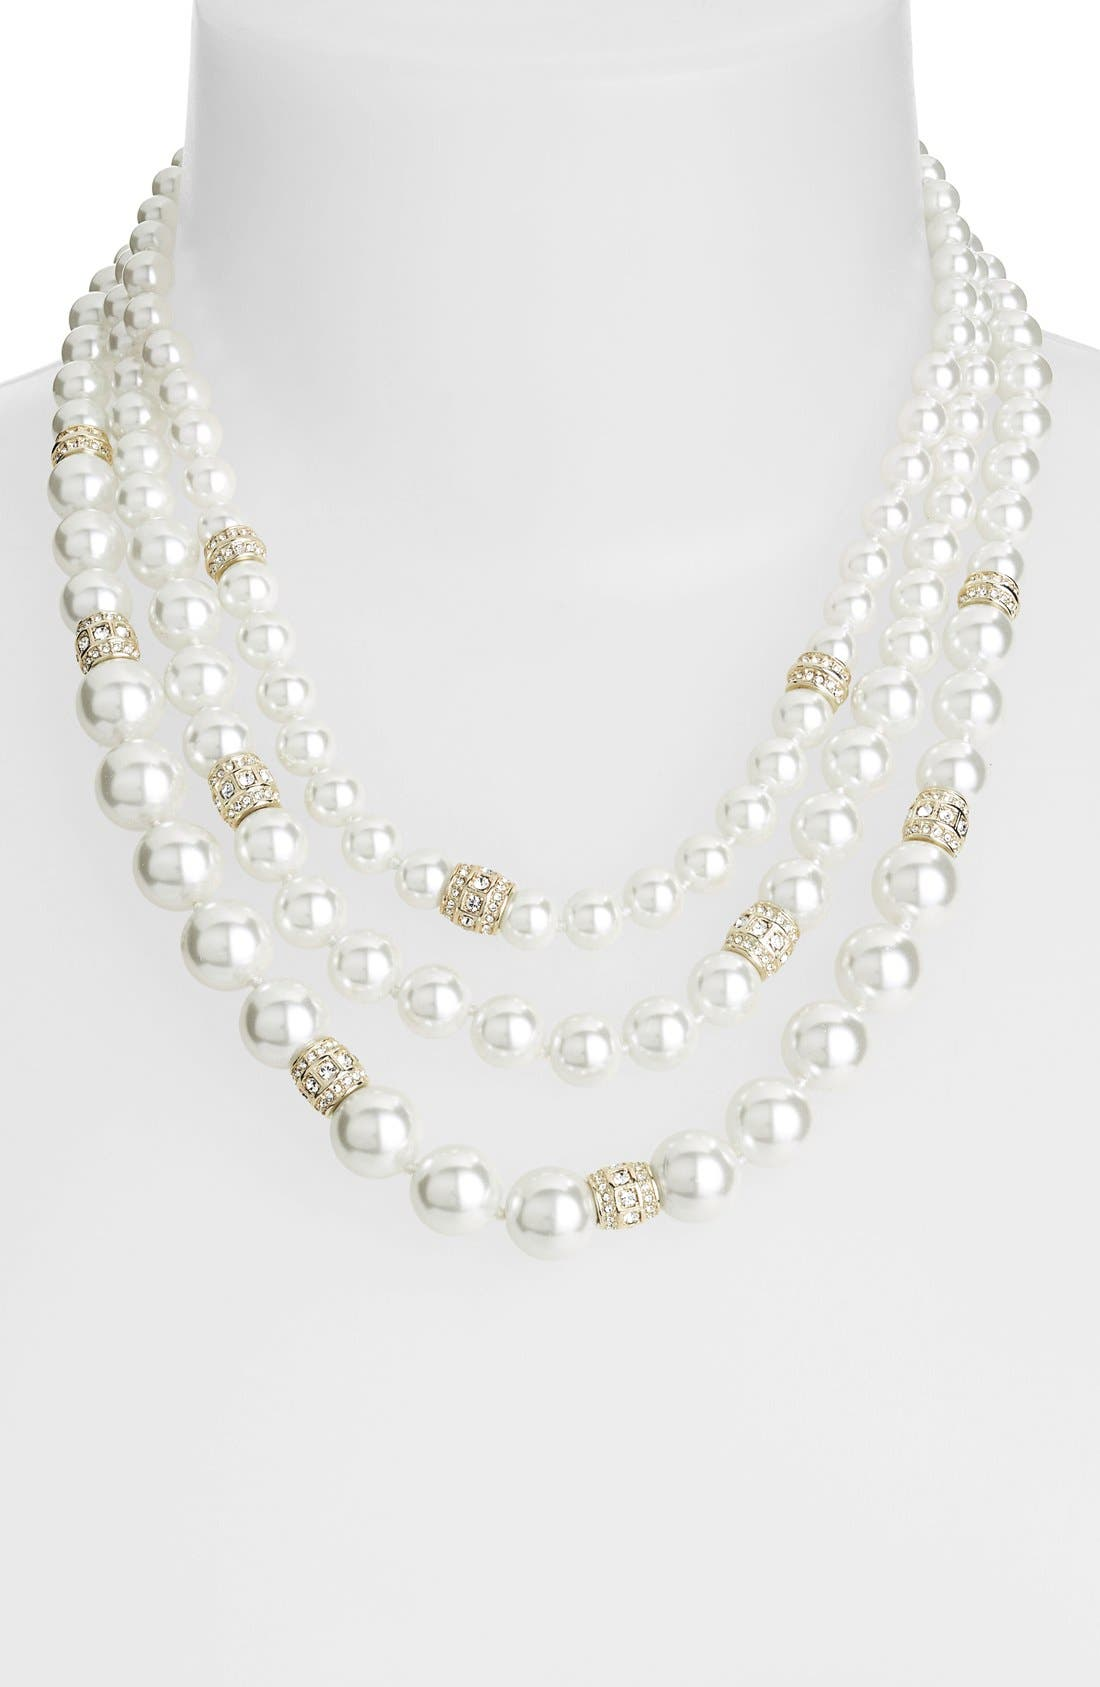 Alternate Image 1 Selected - Judith Jack 'Gala' Three-Row Faux Pearl Necklace